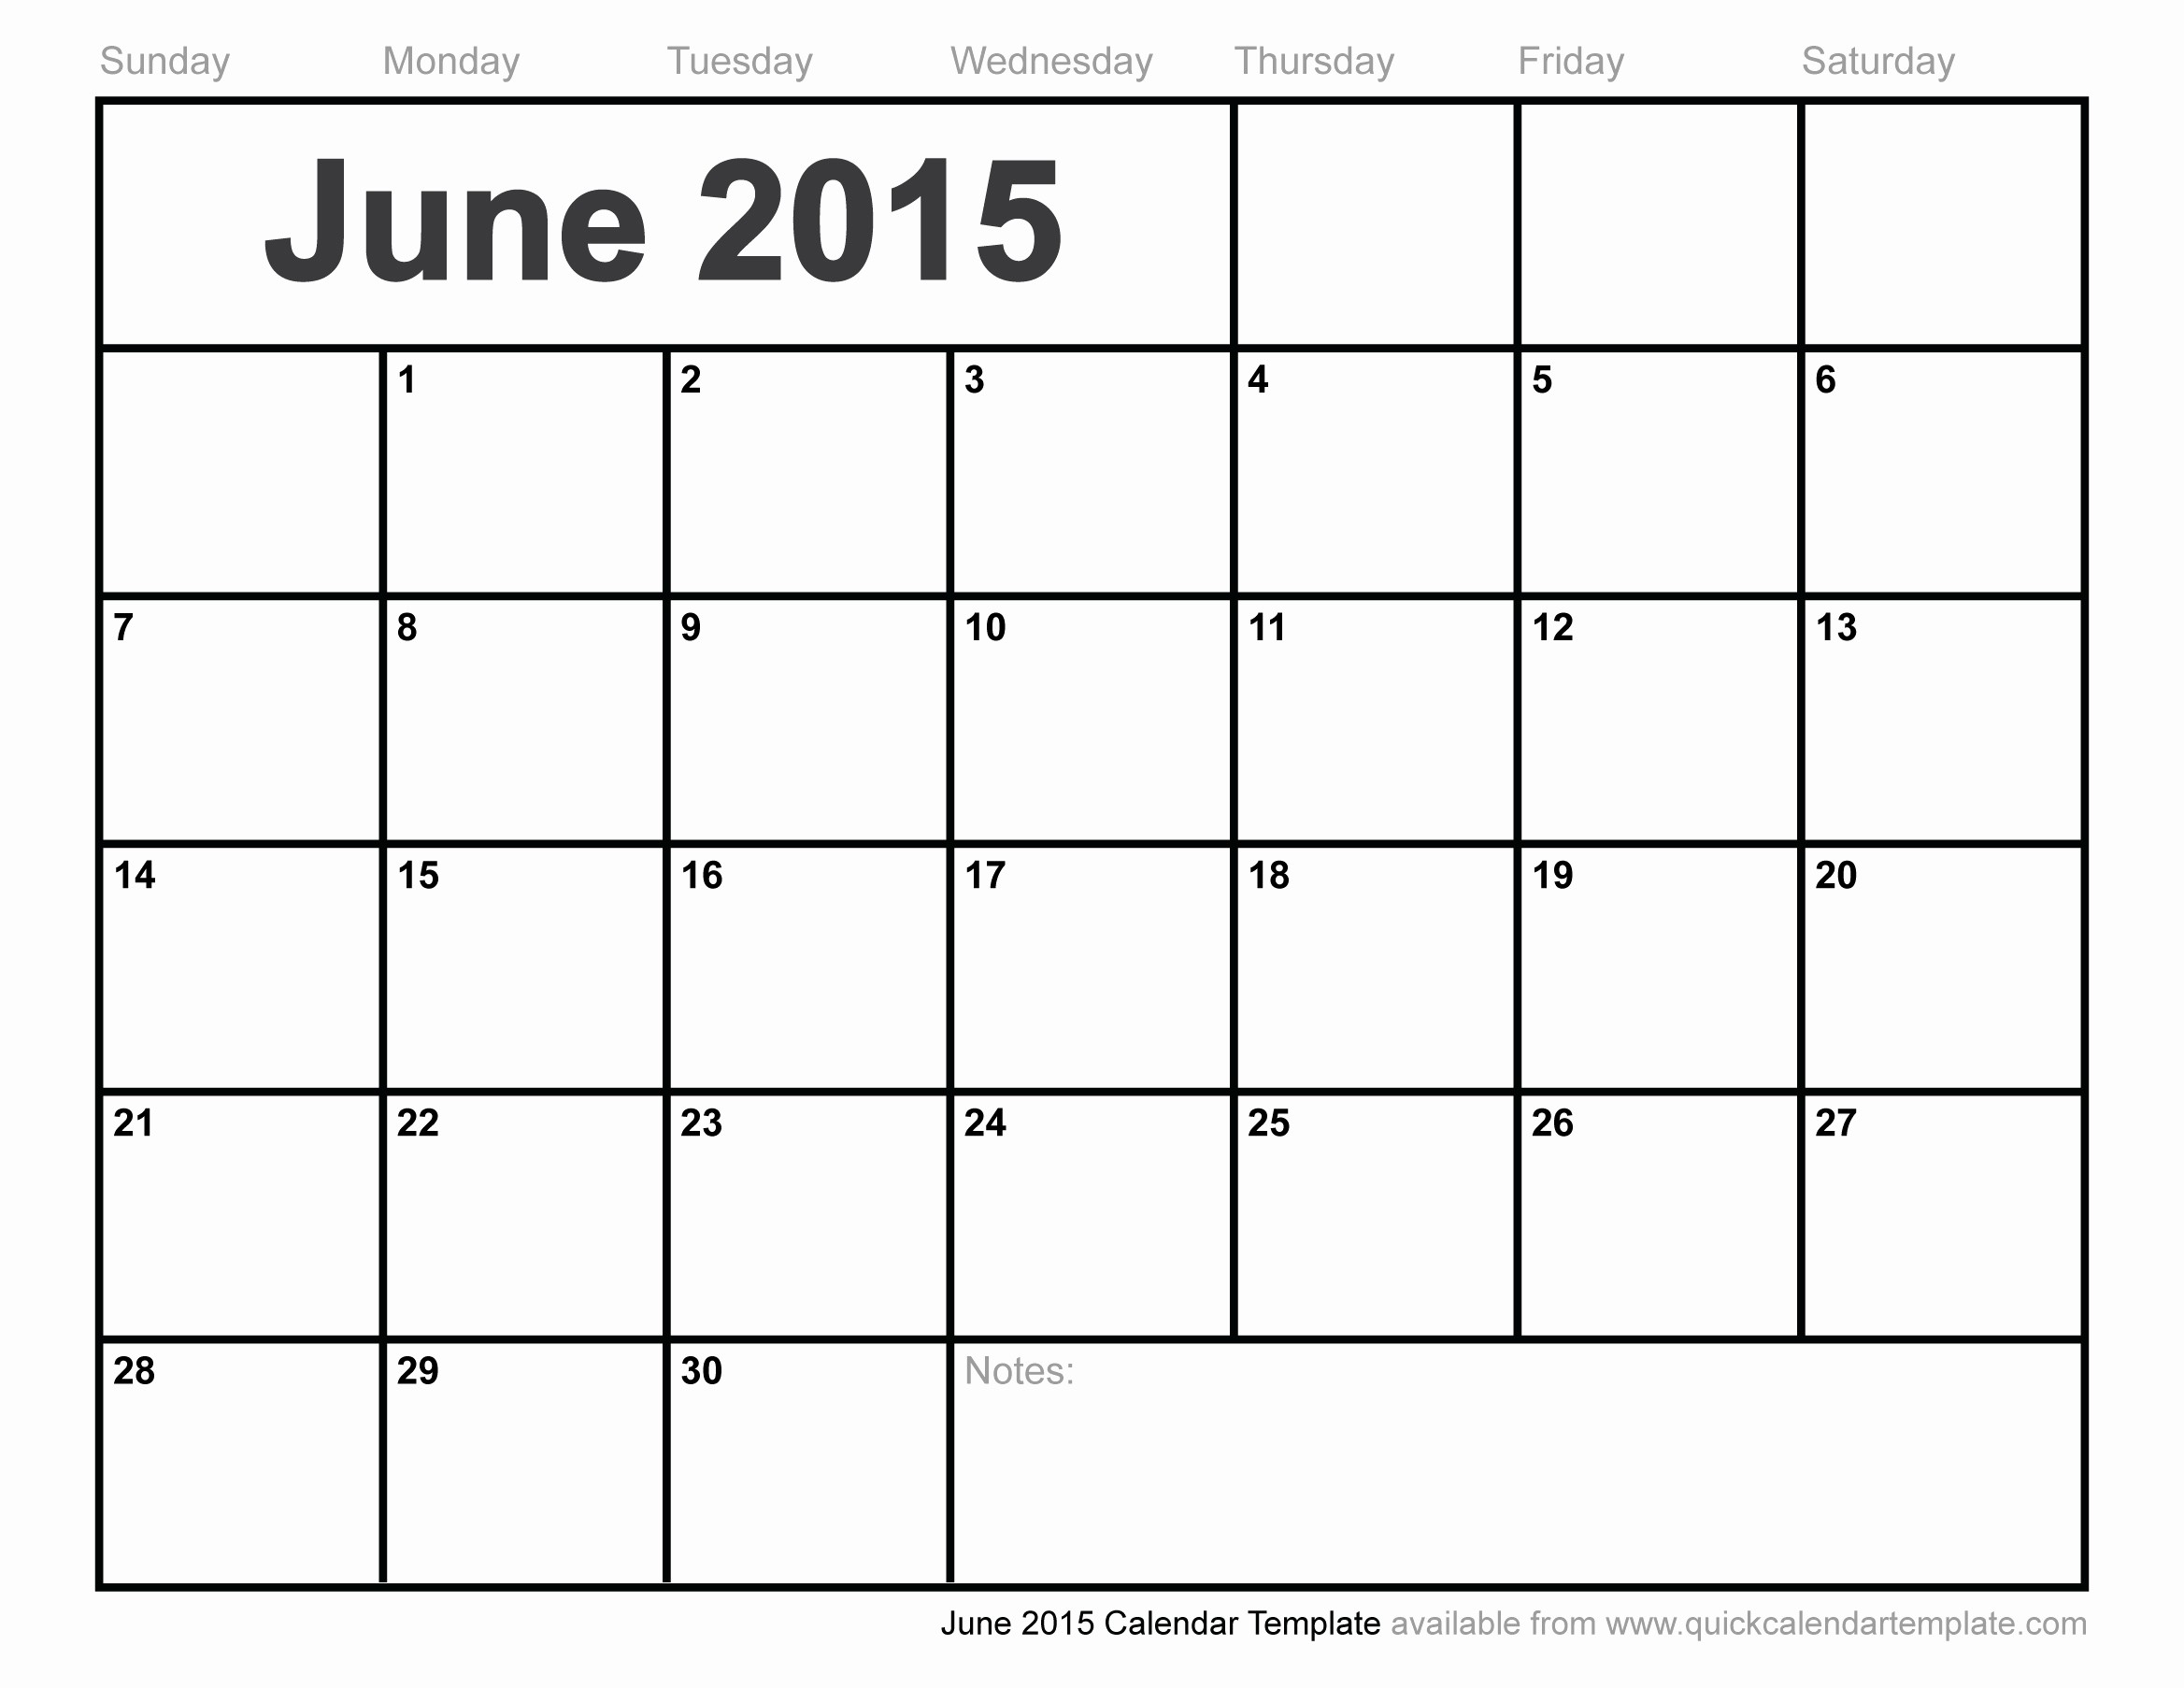 Free 2015 Yearly Calendar Template New June 2015 Calendar Template